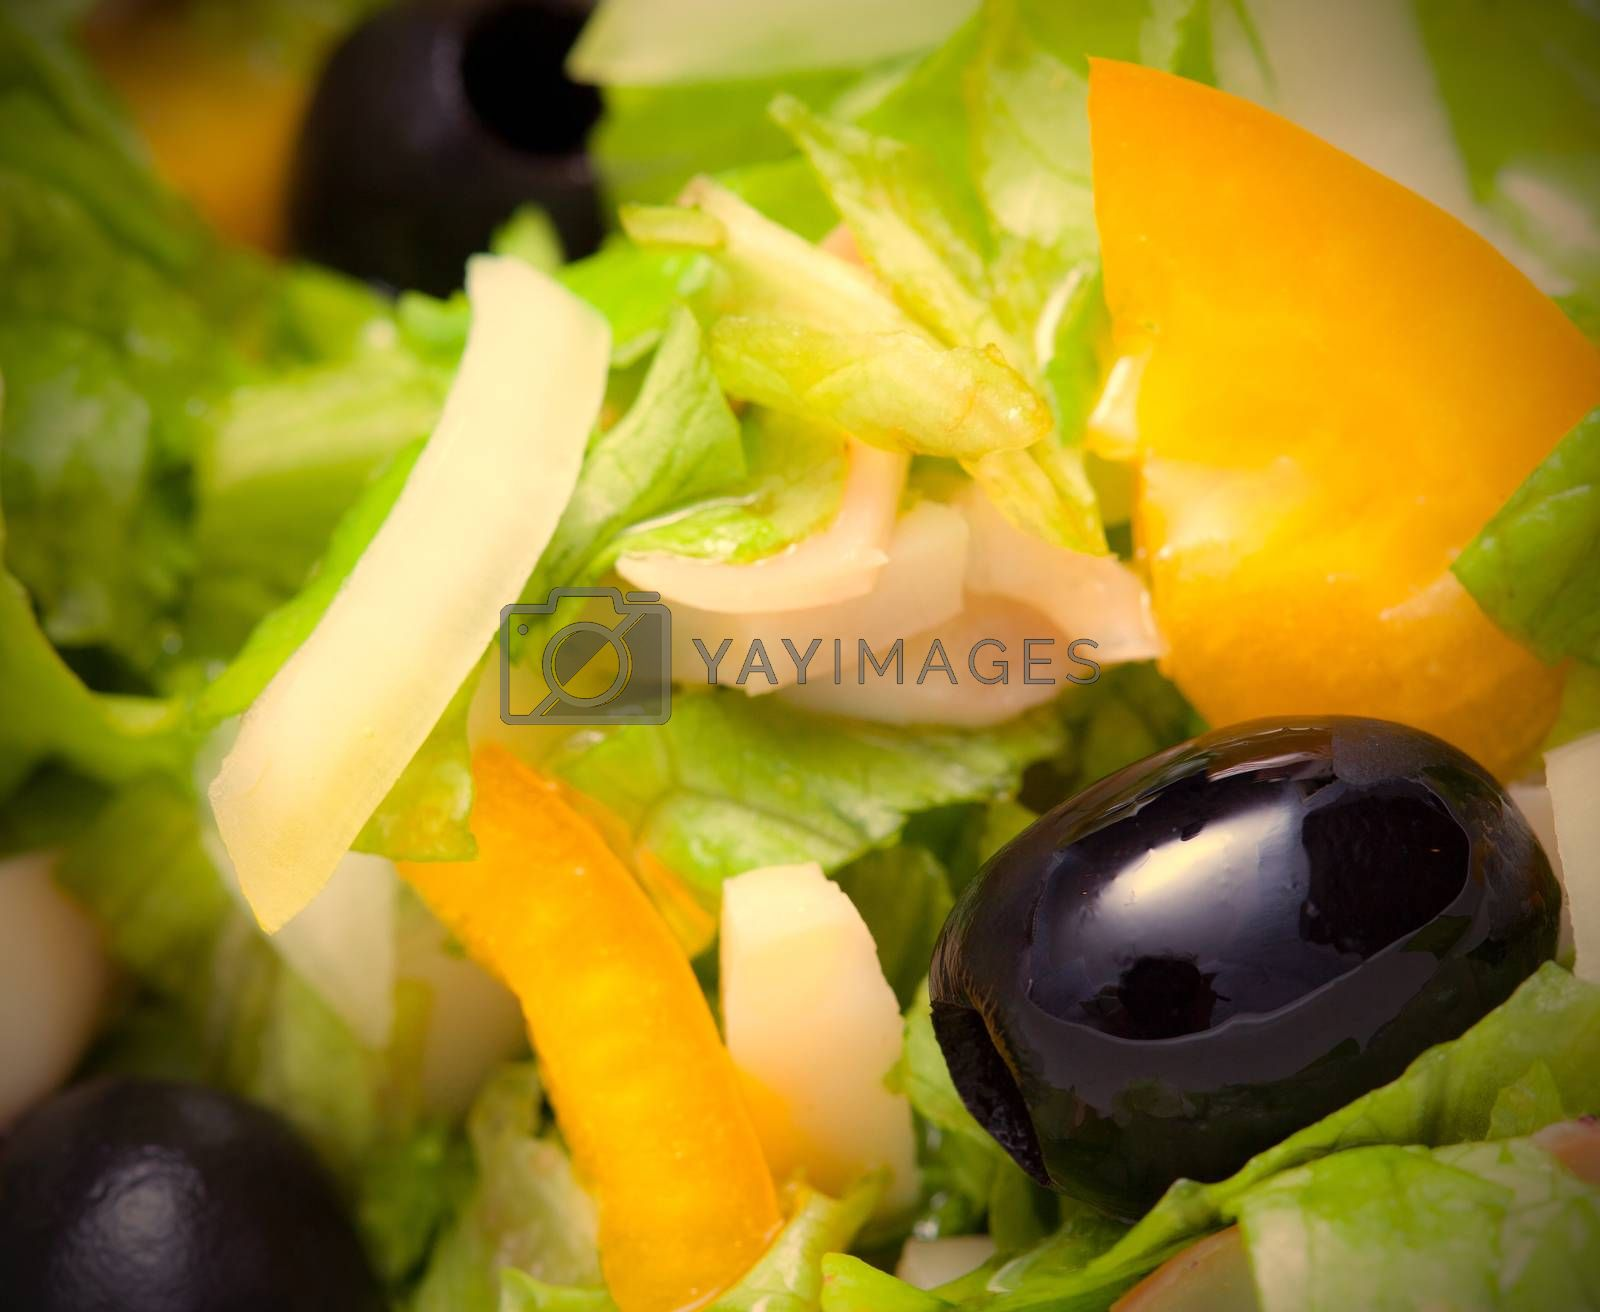 Royalty free image of Assorted salad of green leaf lettuce with squid and black olives by Astroid